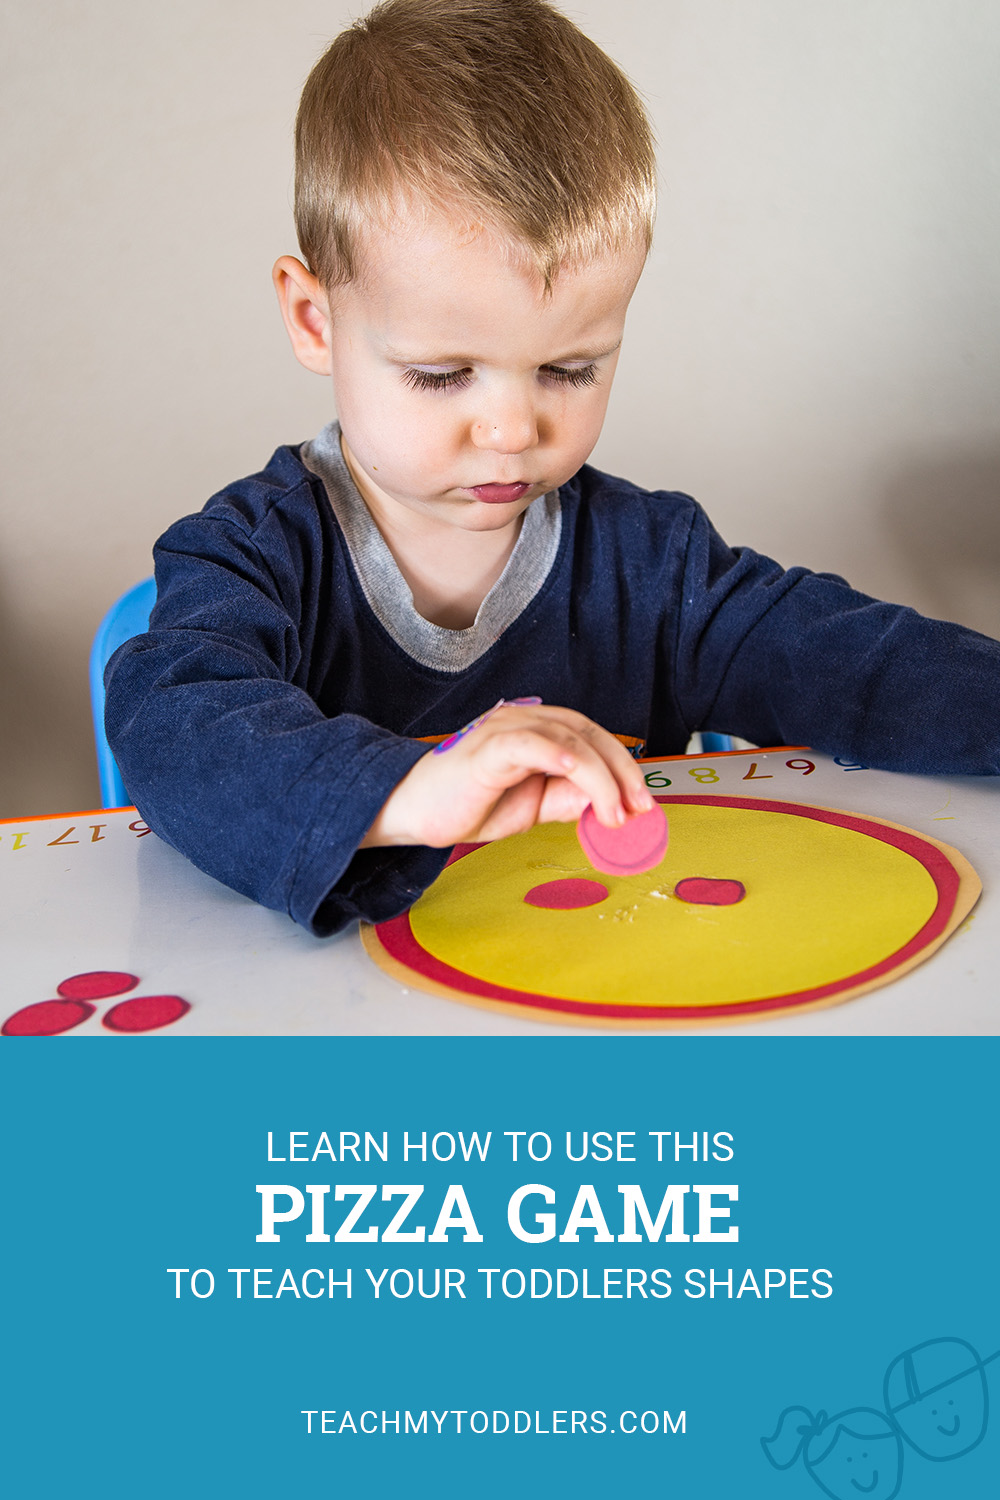 Learn how to use this pizza game to teach your toddlers shapes